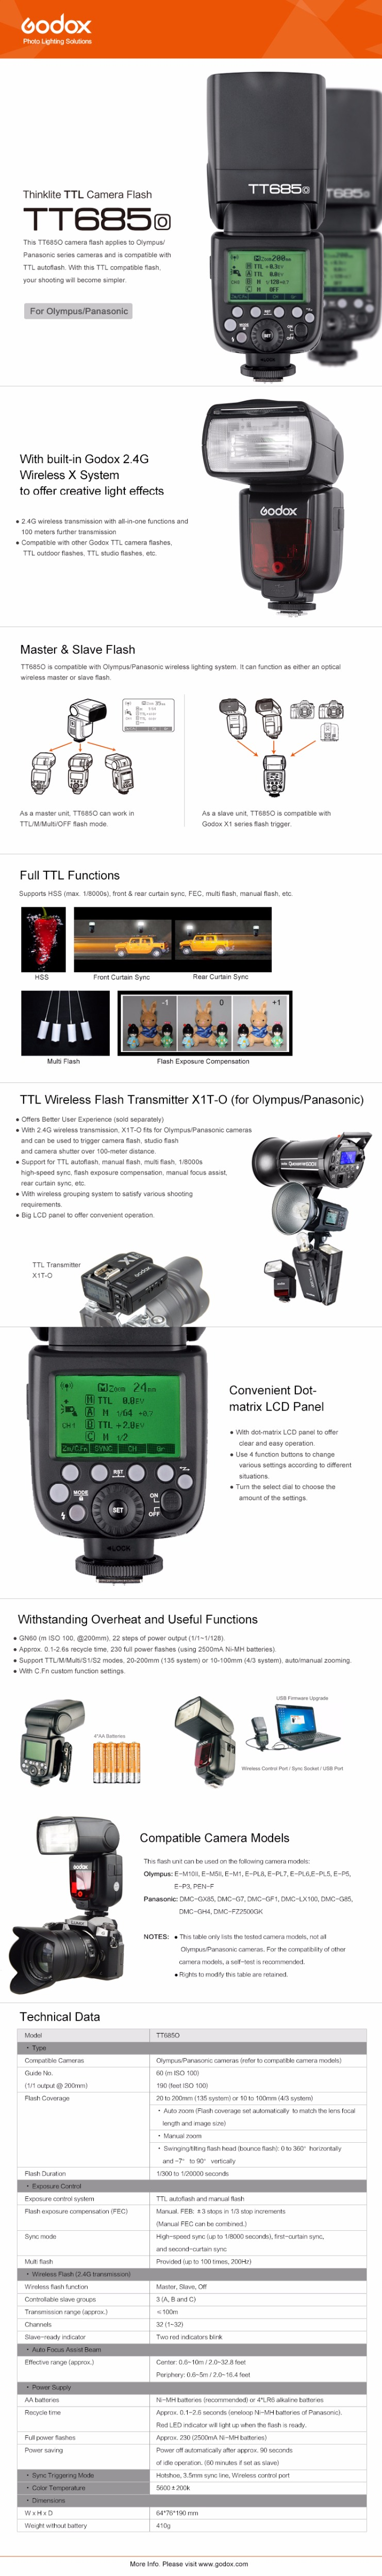 GODOX 2X TT685O Thinklite TTL Camera Flash High Speed 1//8000s GN60 with X1T-O Transmitter Compatible for Olympus Panasonic Cameras Autoflash